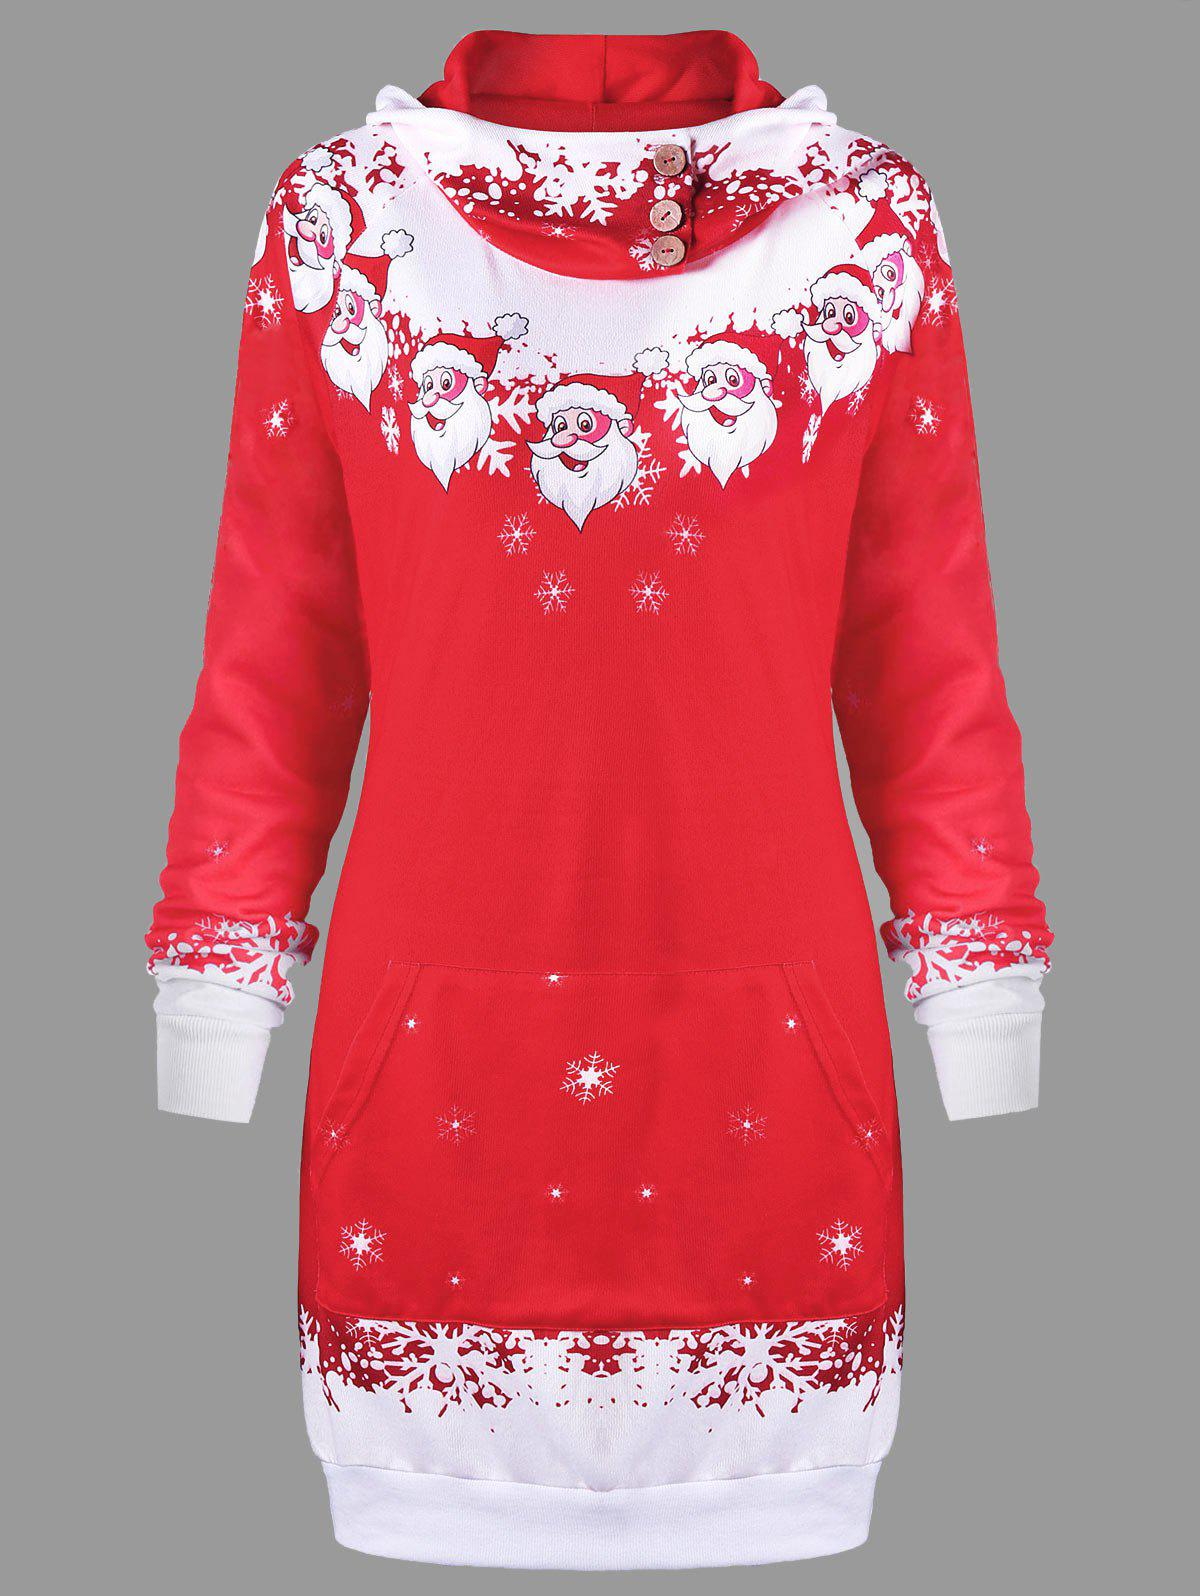 Christmas Santa Claus Print Hooded DressWOMEN<br><br>Size: L; Color: RED; Style: Casual; Material: Polyester; Silhouette: Shift; Dresses Length: Mini; Neckline: Hooded; Sleeve Length: Long Sleeves; Embellishment: Button,Front Pocket; Pattern Type: Character; With Belt: No; Season: Fall,Spring,Winter; Weight: 0.4000kg; Package Contents: 1 x Dress; Occasion: Casual;